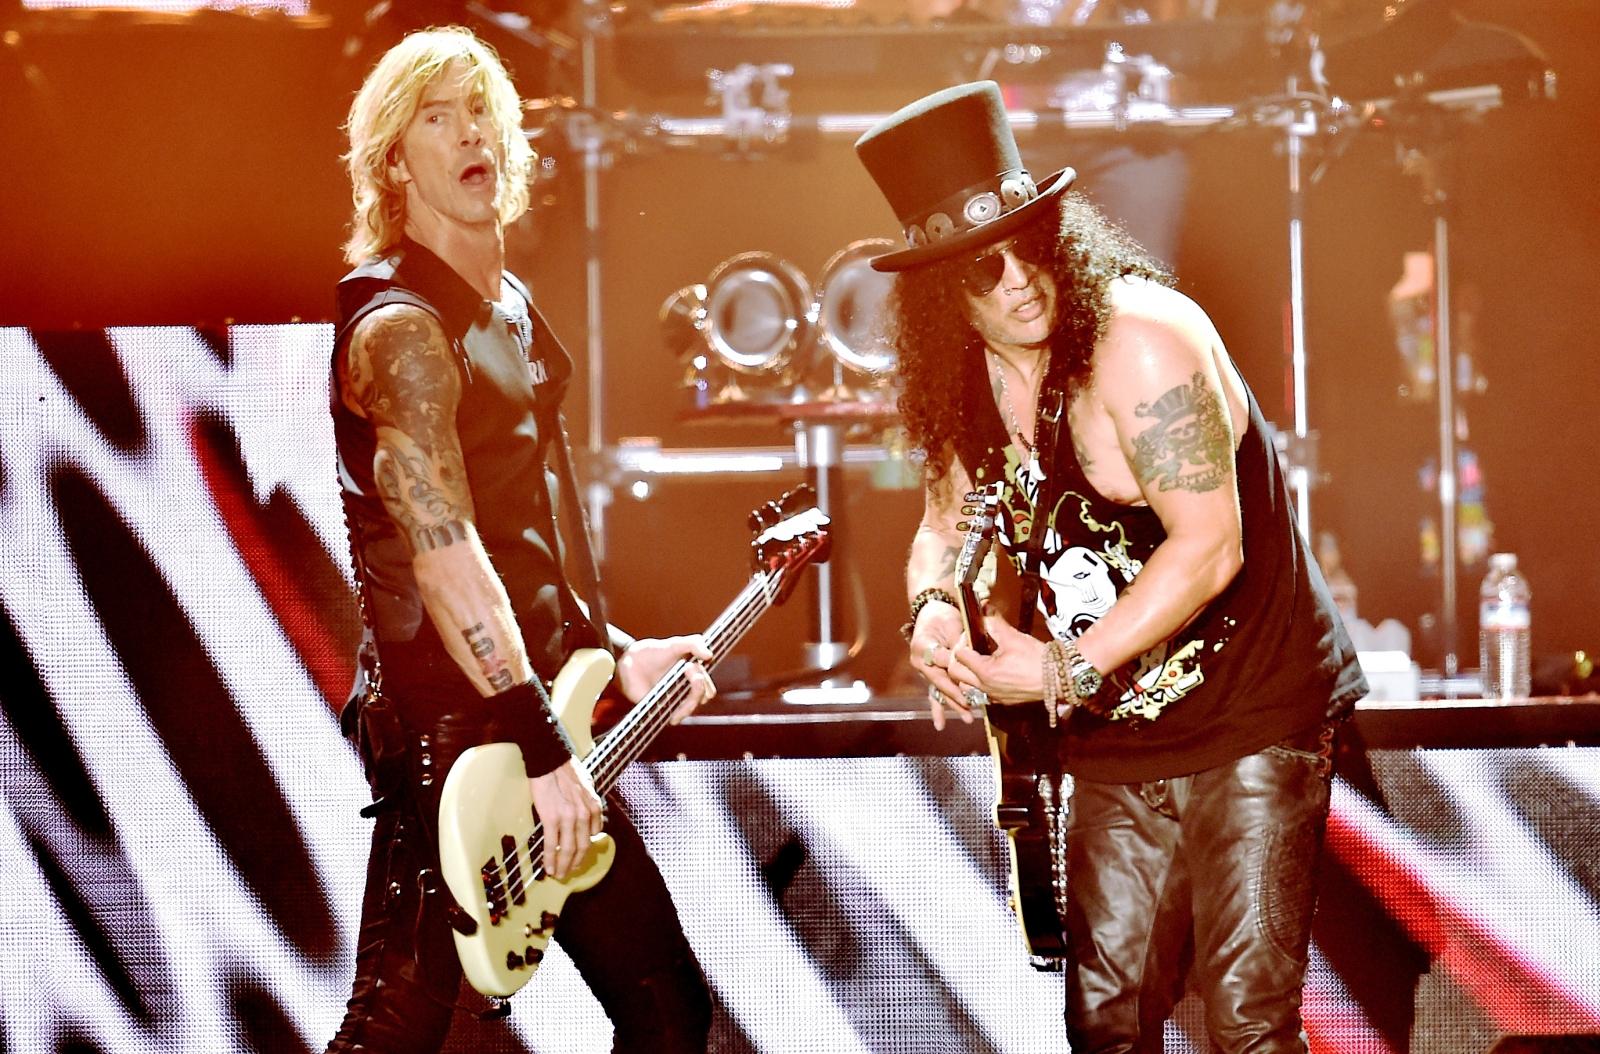 Guns N' Roses Slash and Duff McKagan